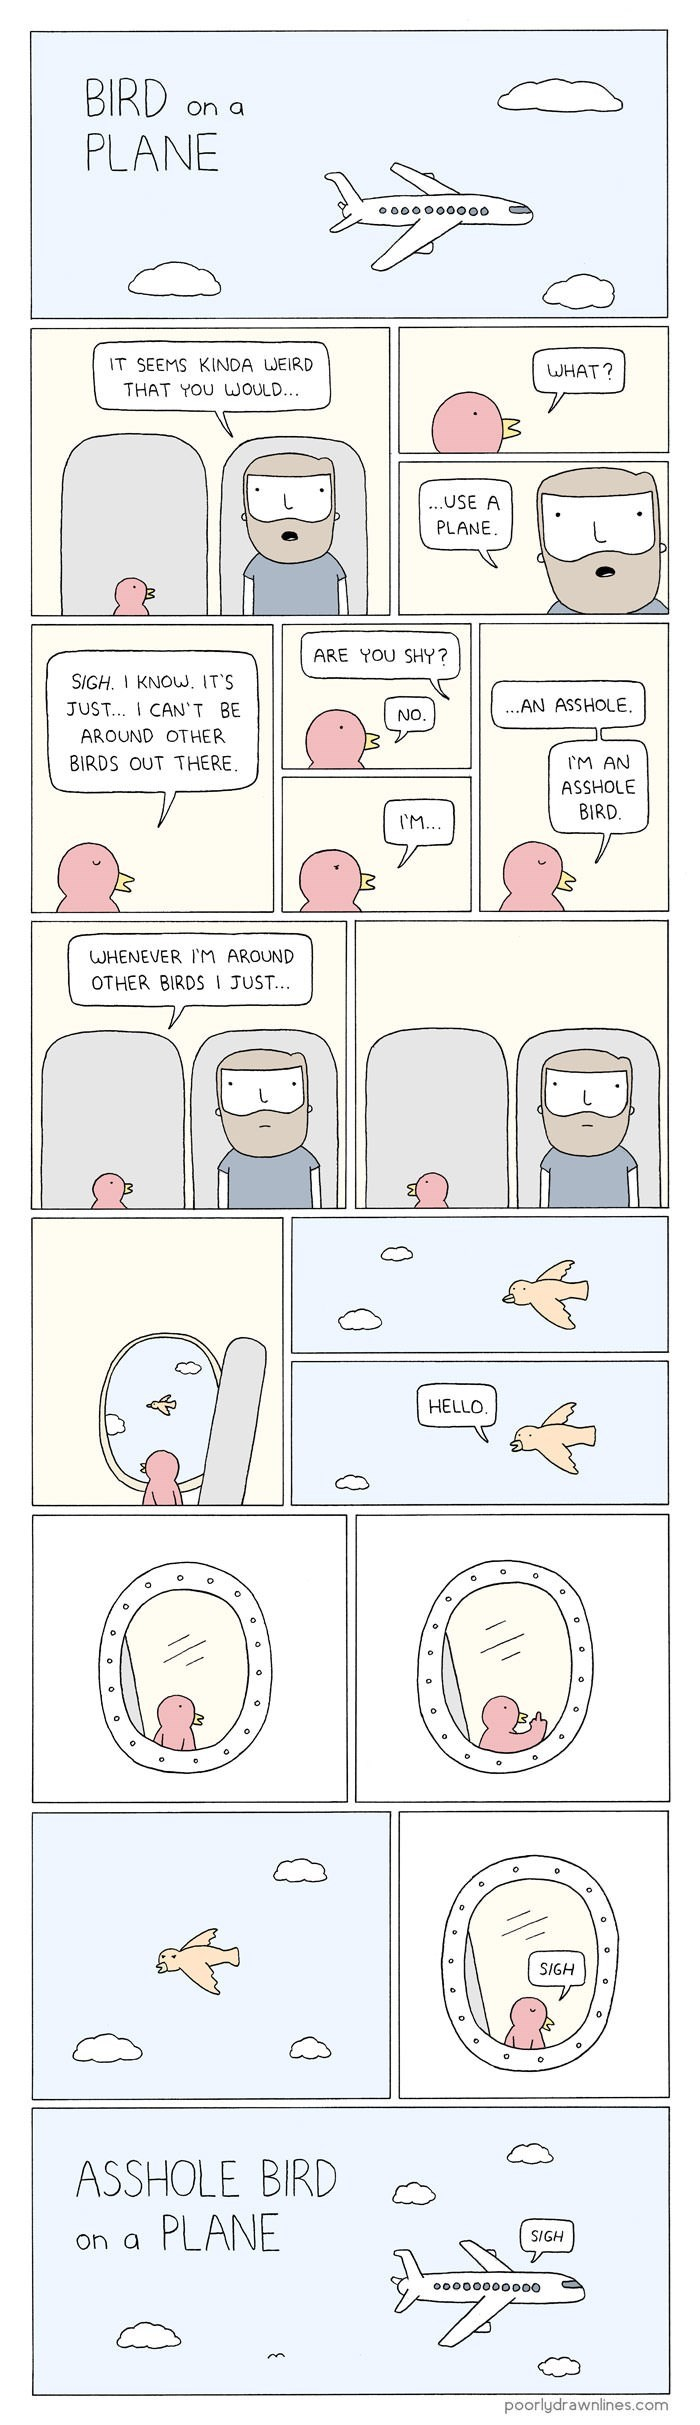 Text - BIRD PLANE on a o ooo00000o IT SEEMS KINDA WEIRD WHAT? THAT YOU WOULD... ...USE A PLANE ARE YOU SHY? SIGH. KNOW. IT'S ...AN ASSHOLE. JUST... ICAN'T BE NO. AROUND OTHER BIRDS OUT THERE. M AN ASSHOLE BIRD M... WHENEVER lM AROUND OTHER BIRDS I JUST.. HELLO SIGH BIRD ASSHOLE on a PLANE SIGH ooo0000O000 poorlydrawnlines.com